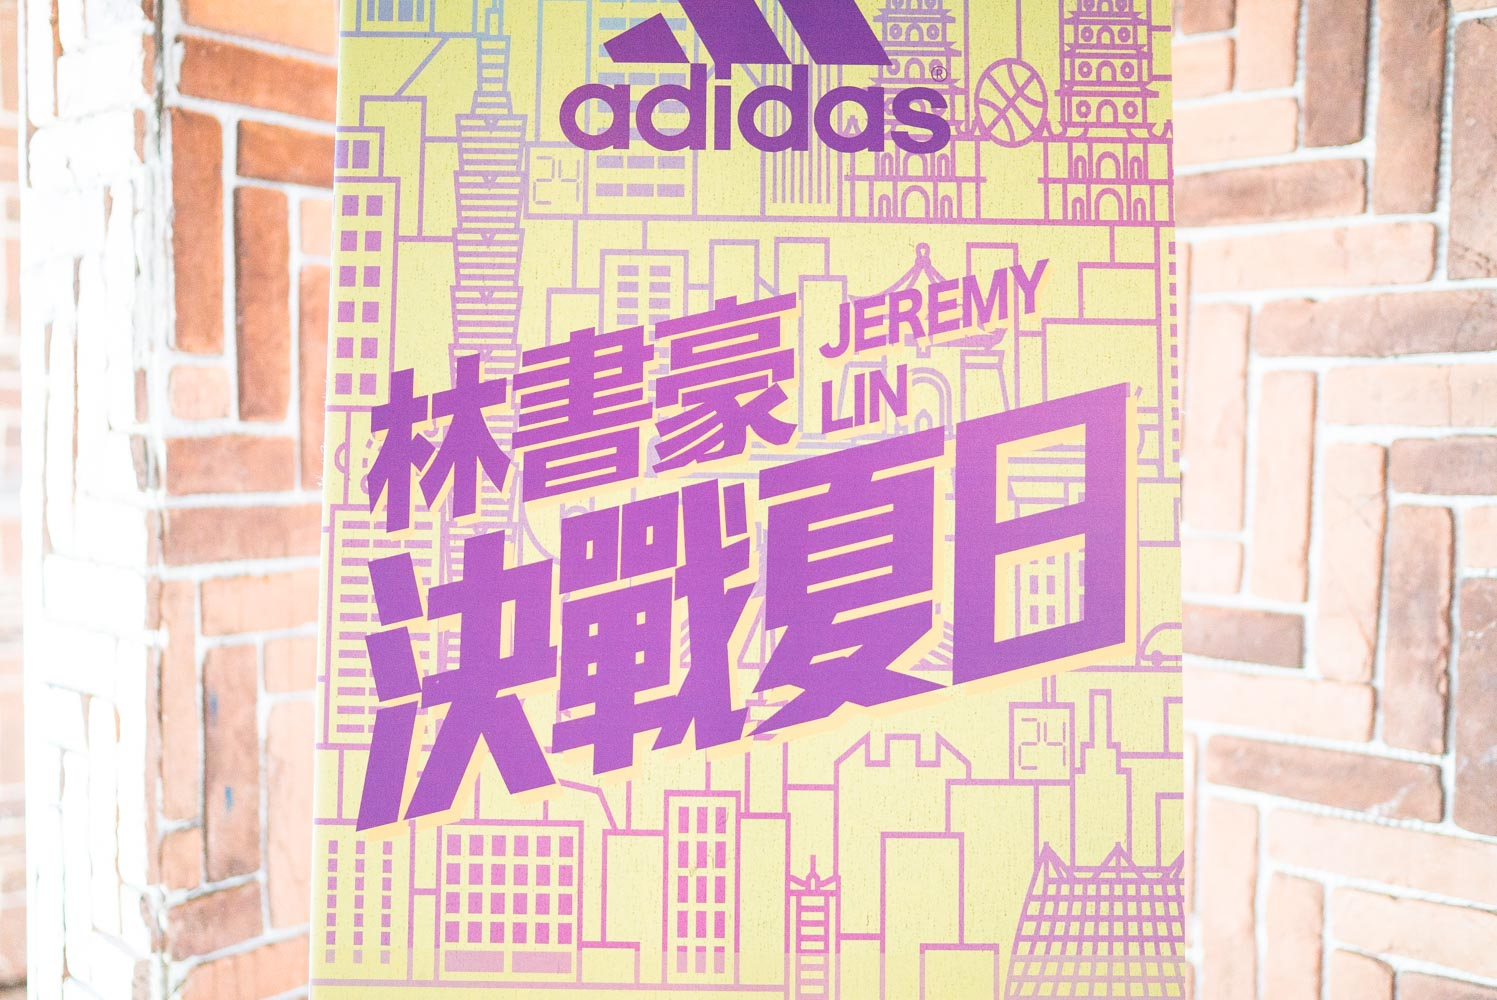 adidas x jeremy lin take on summer tour 2015 press conference